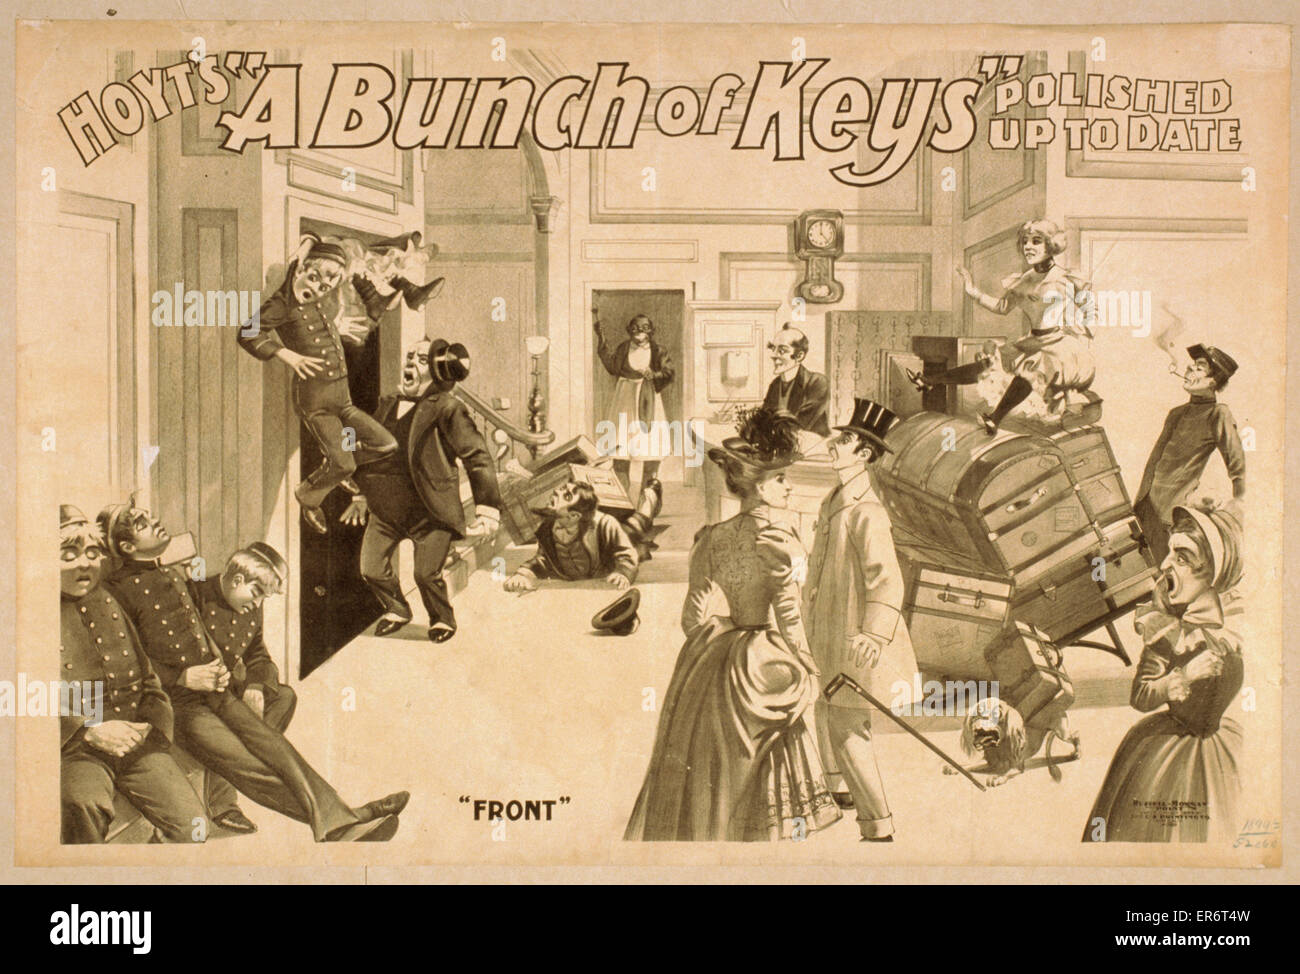 Hoyt's A bunch of keys polished up to date. Date c1899. - Stock Image